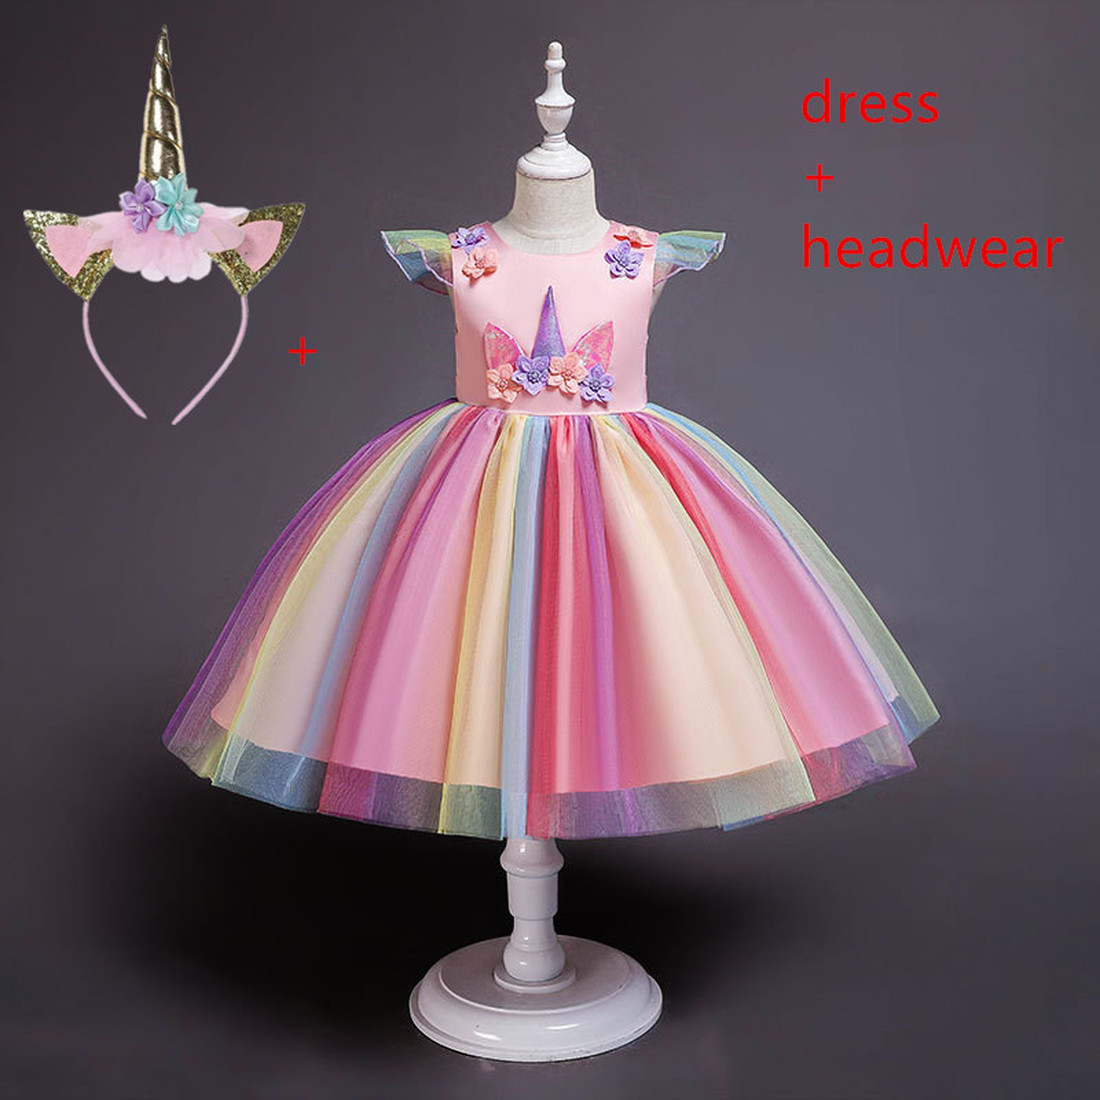 2019 Flower Girls Unicorn Tutu Dress Pastel Rainbow Princess Girls Birthday Party Dress Children Kids Halloween Unicorn Costume